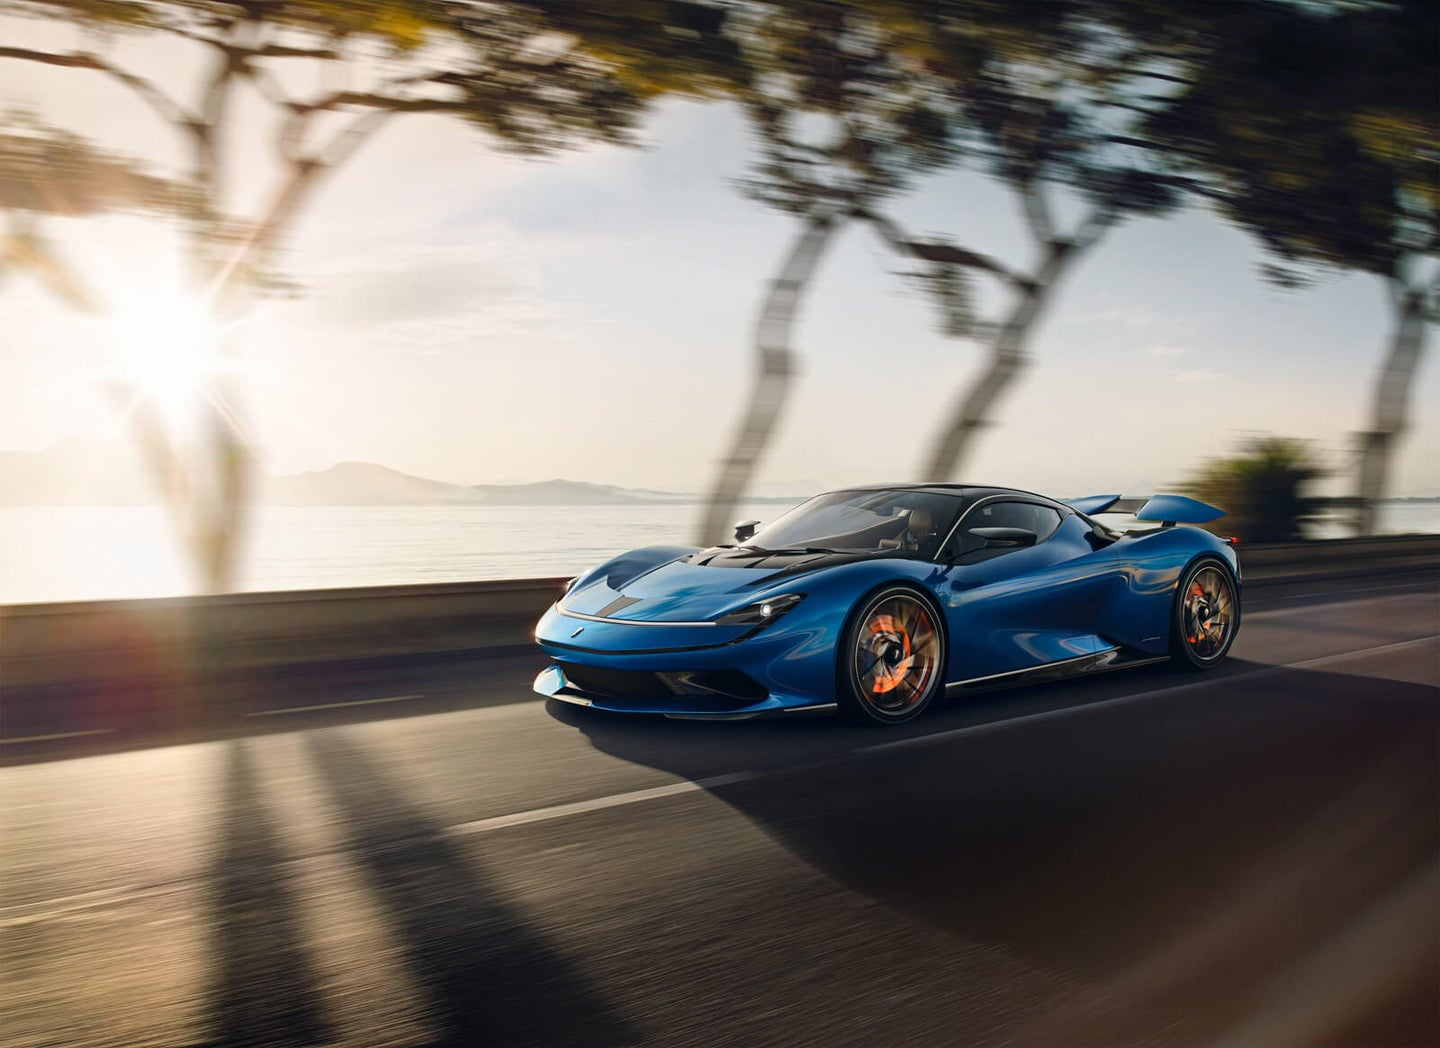 See the incredible supercars from the 2019 Geneva International Motor Show